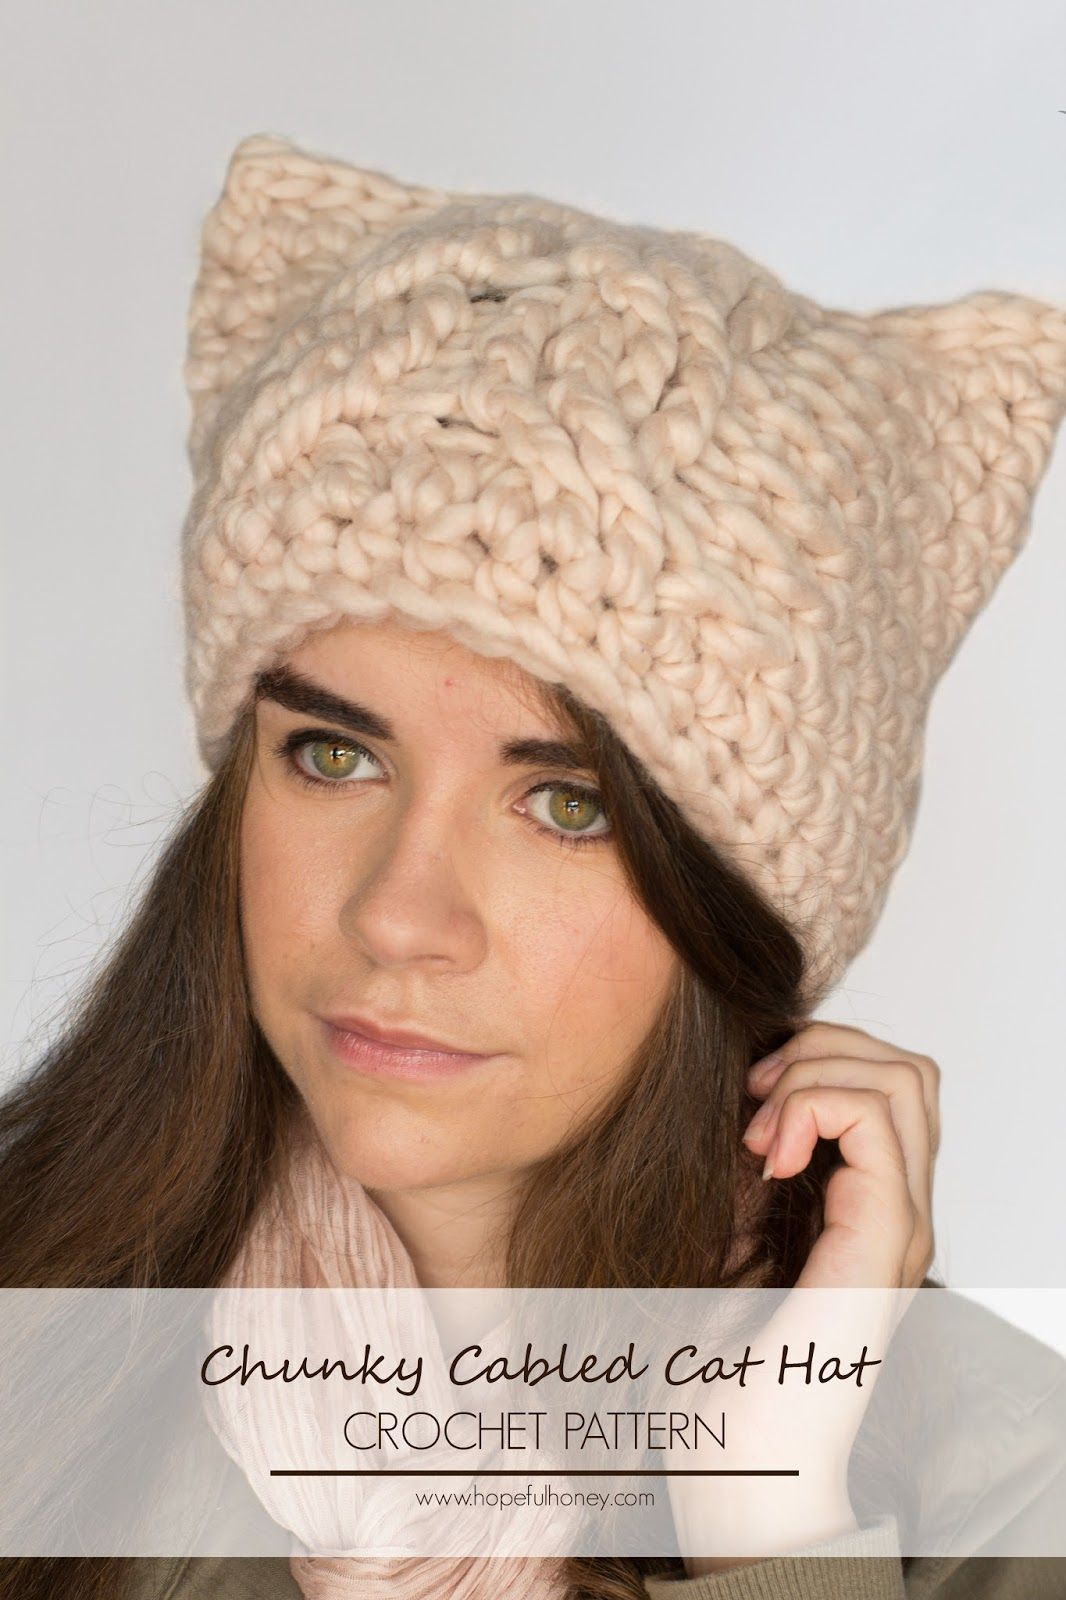 Chunky Cabled Cat Hat - Free Crochet Pattern 050c026b25e